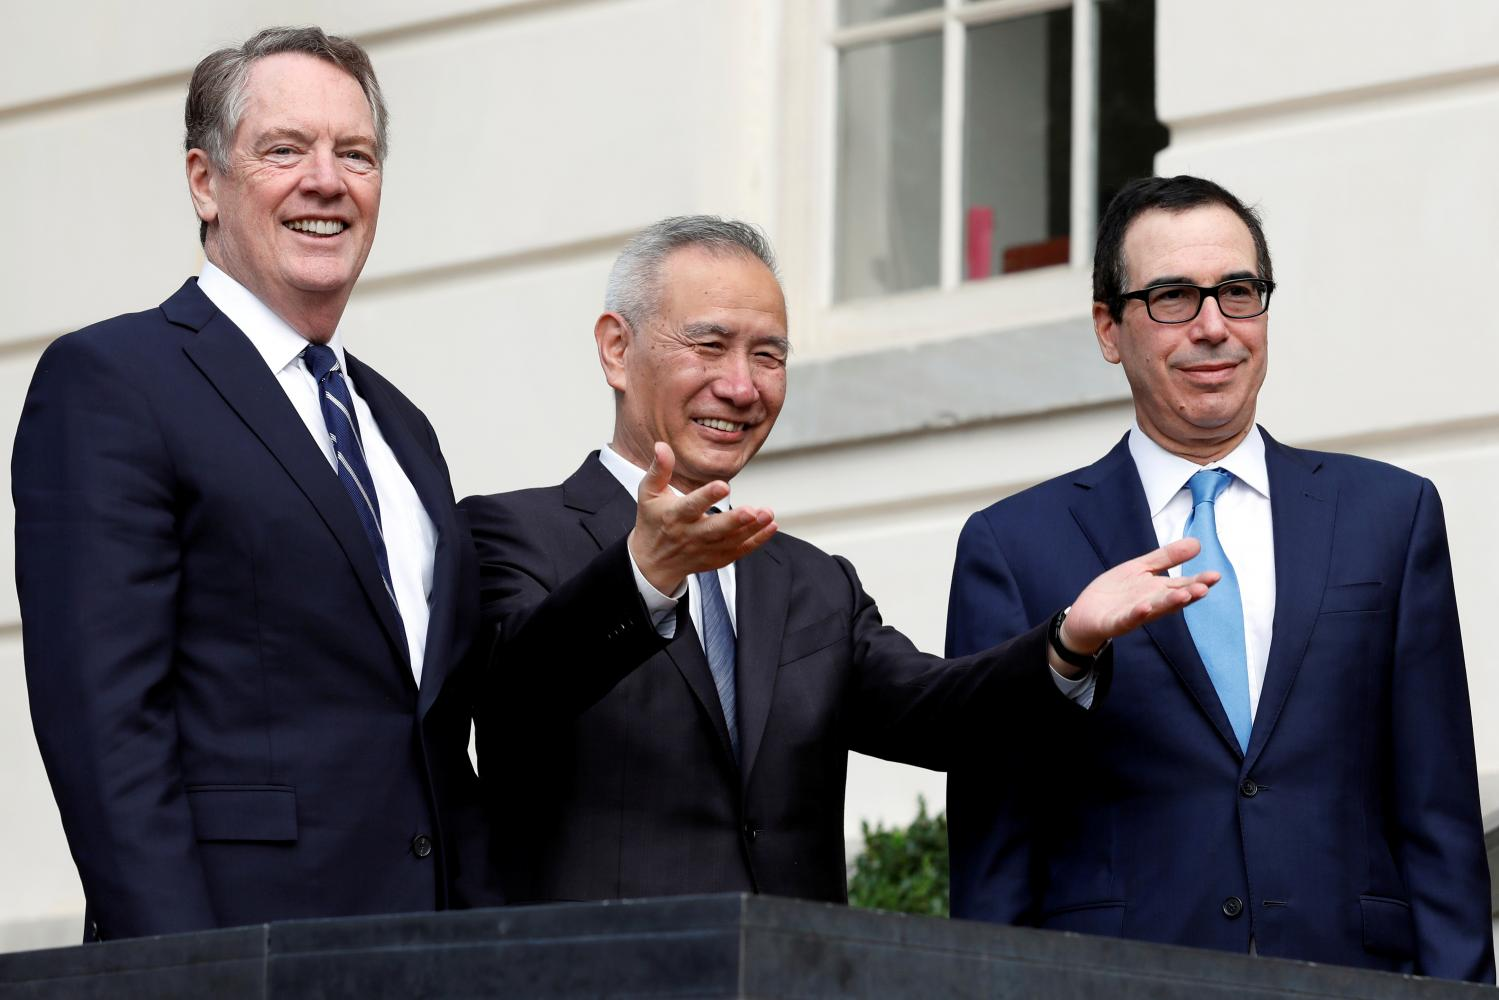 Chinese Vice Premier Liu He gestures to reporters as US Trade Representative Robert Lighthizer (left) and Treasury Secretary Steve Mnuchin look on during a break in trade negotiations in Washington in October. (Reuters file photo)